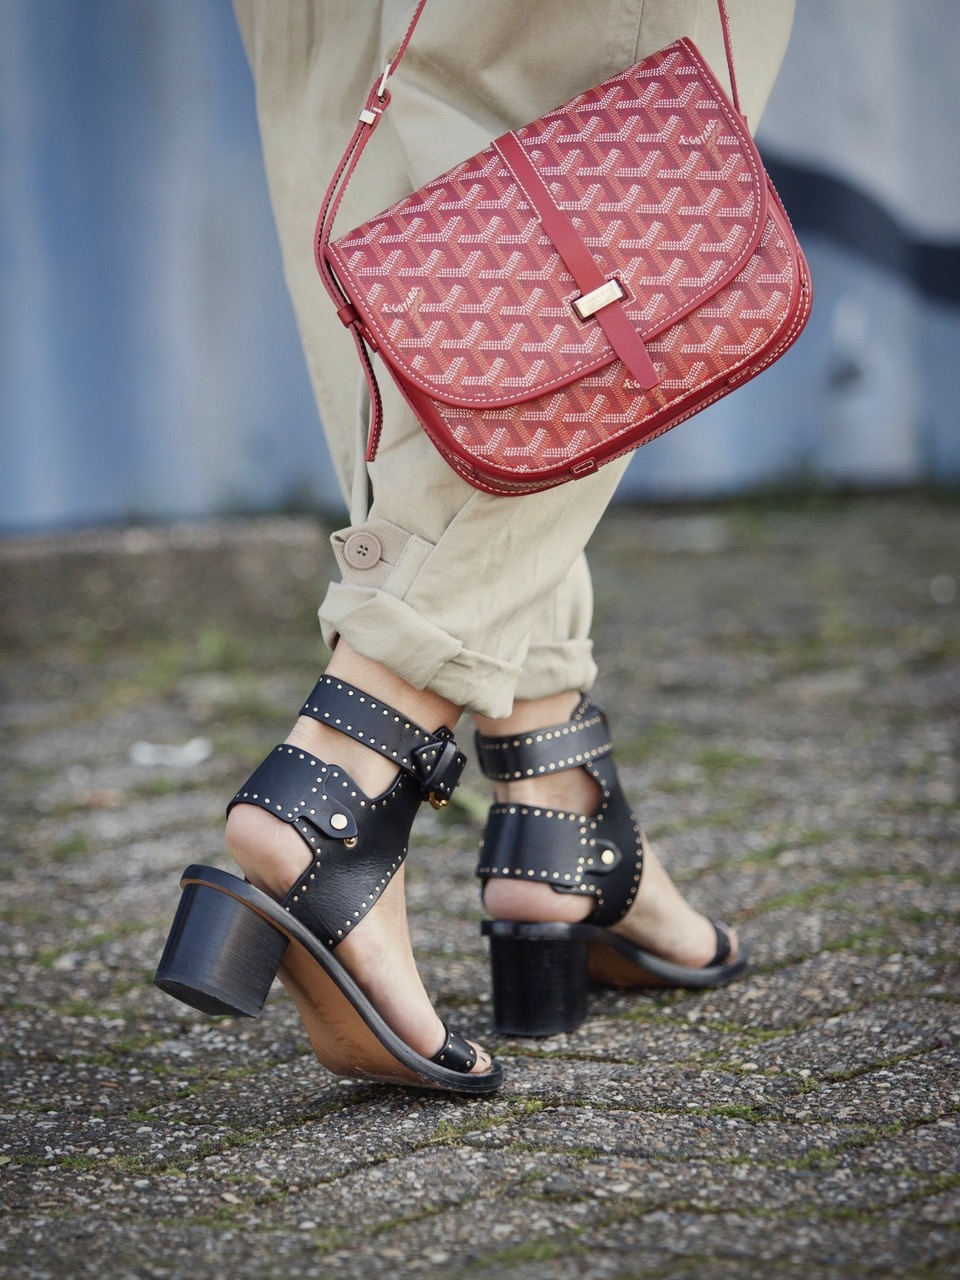 Styling Stories spring streetstyle 2020 wear Isabel Marant Goyard Rag Bone Personal Shopper, stylist